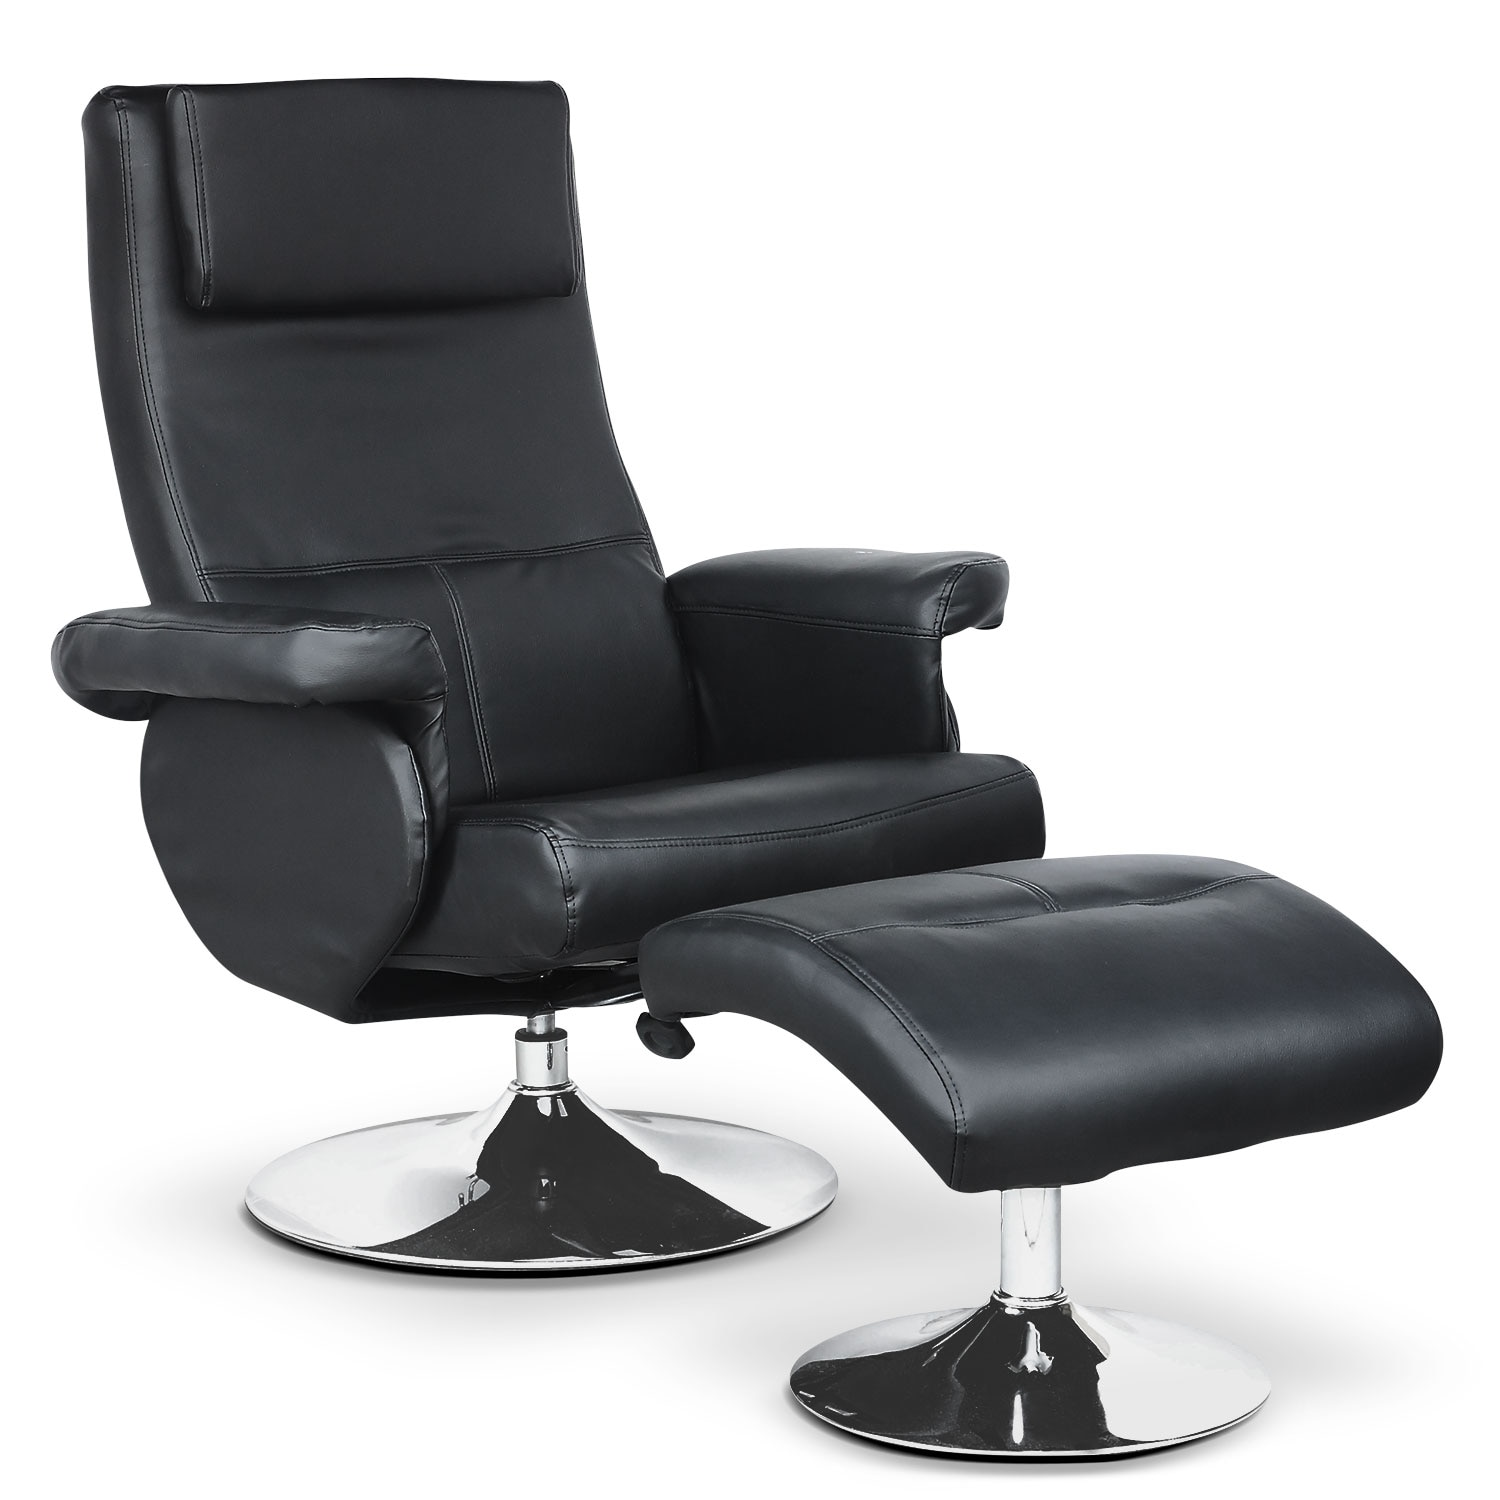 LYT Faux Leather 3-Position Reclining Chair with Swivel Base – Black